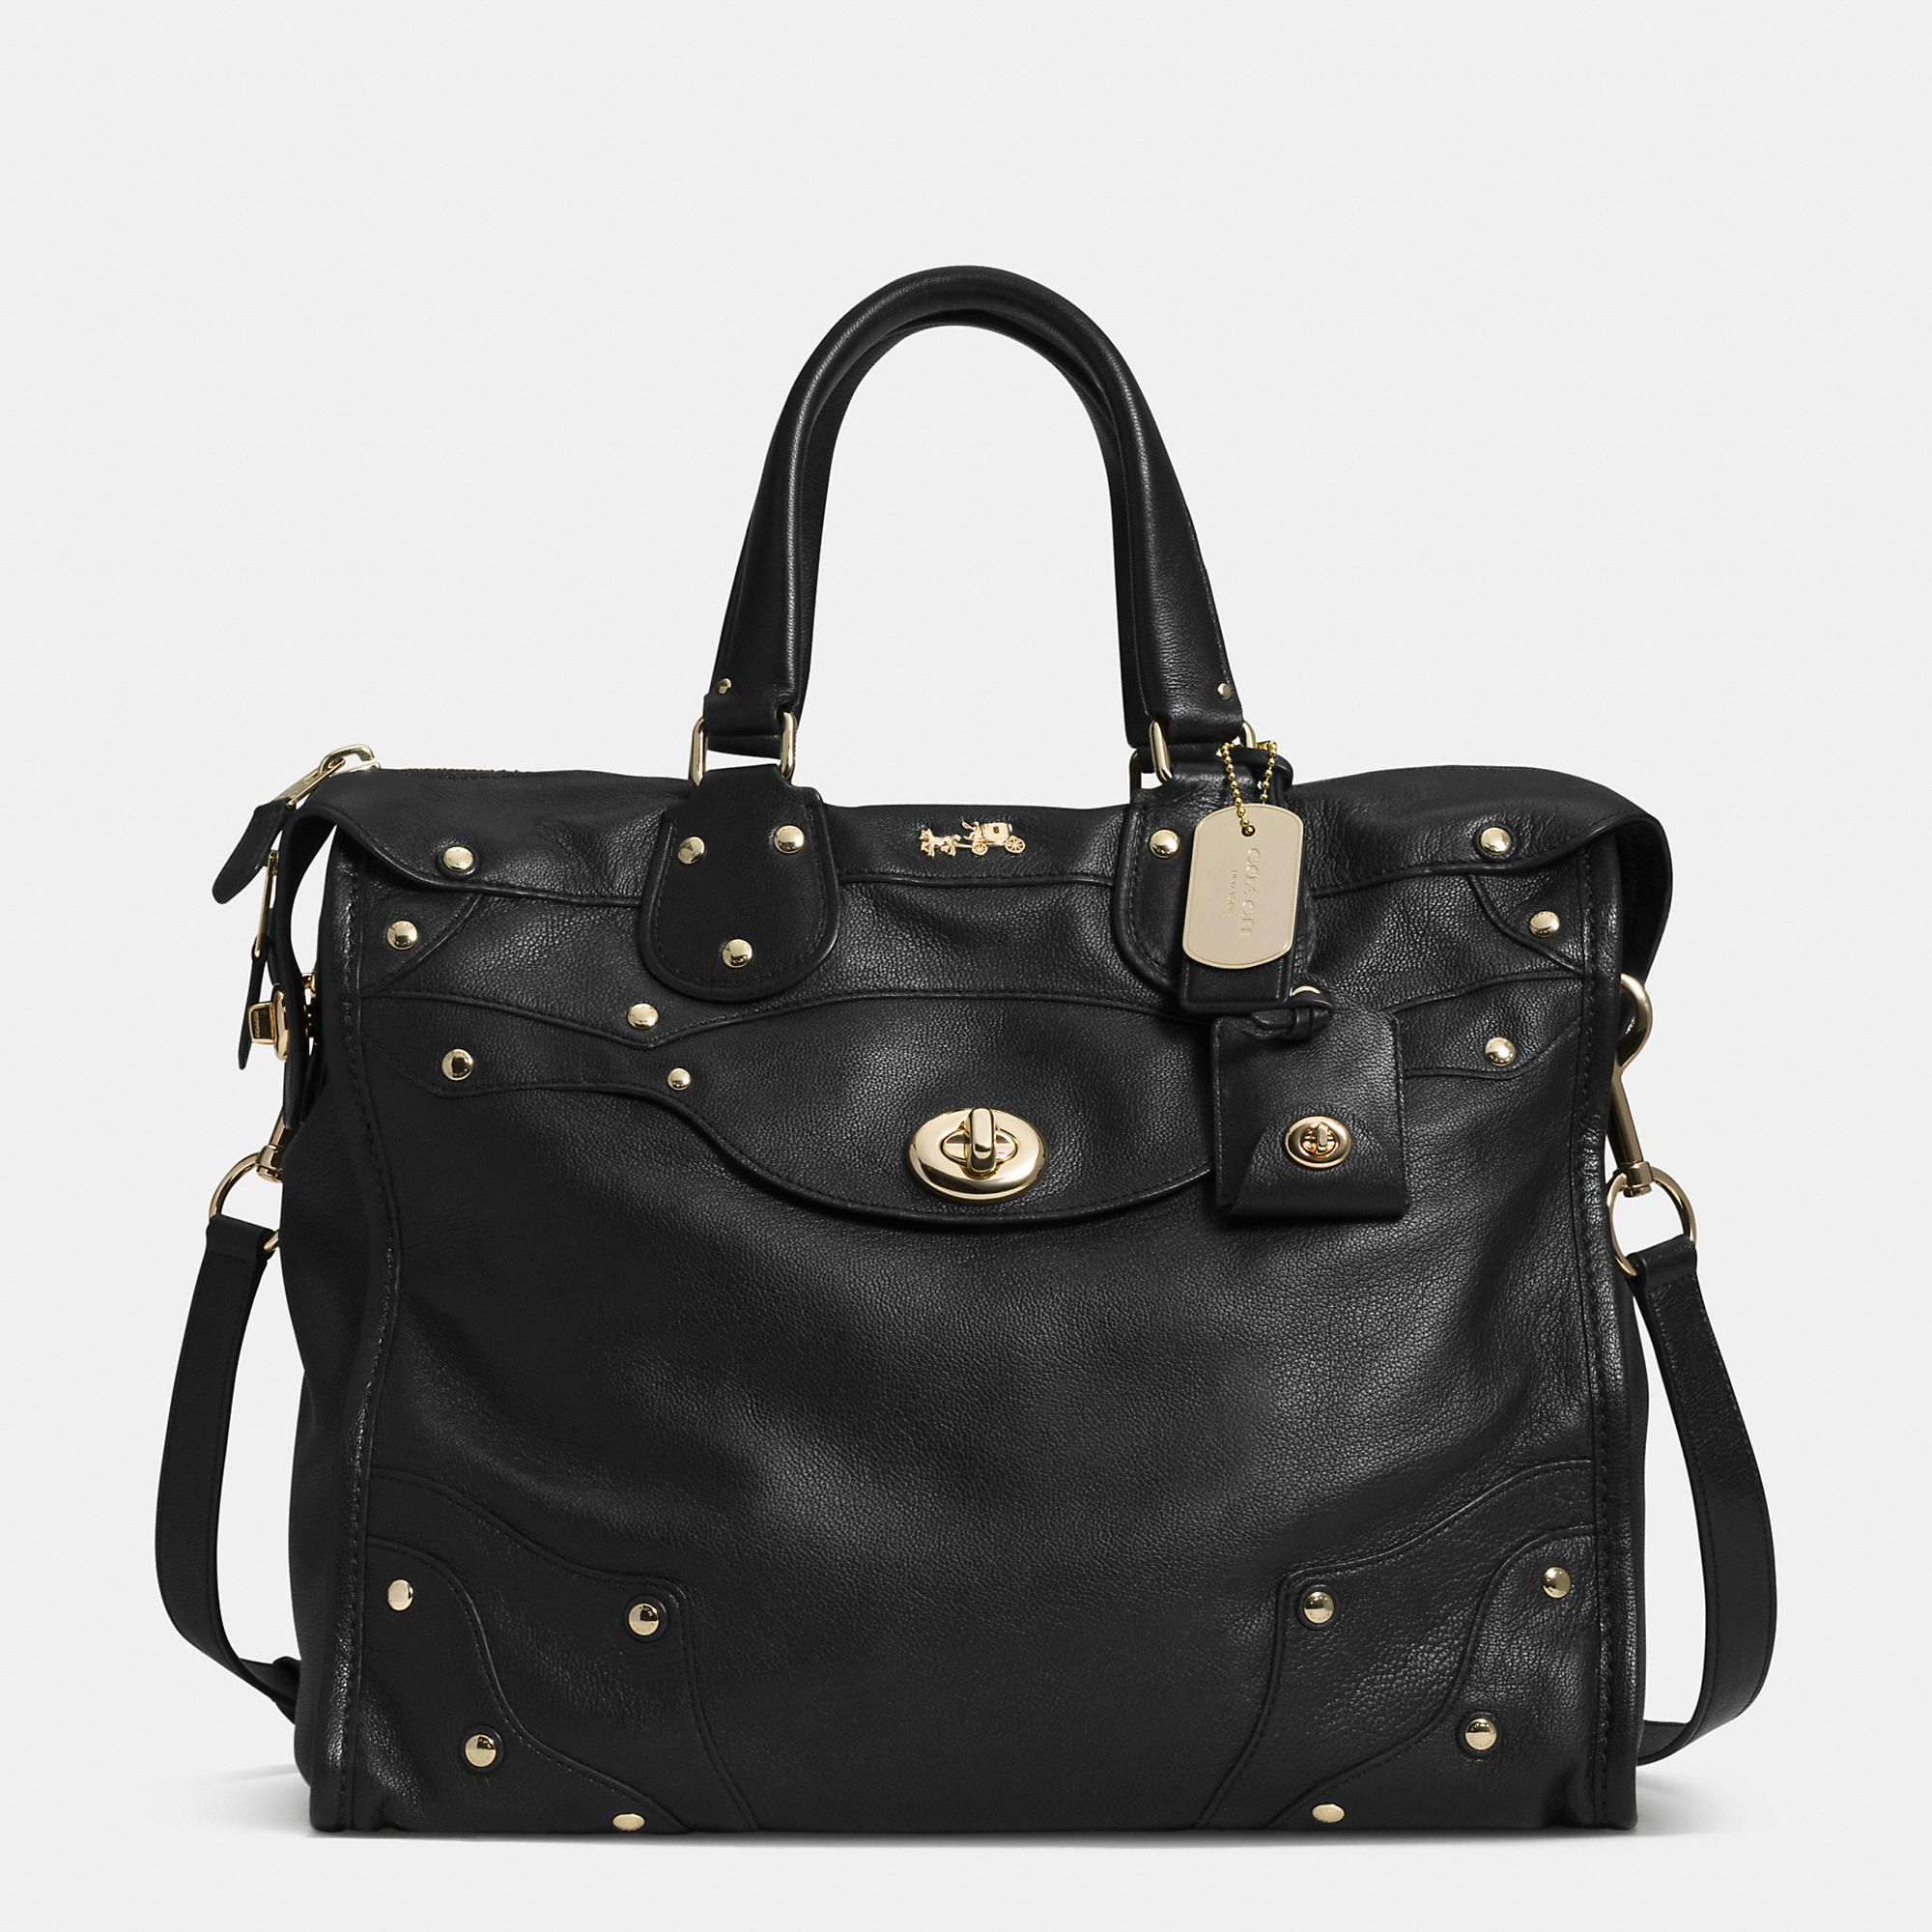 724617d4e360 Rhyder 33 Satchel in Soft Grain Leather